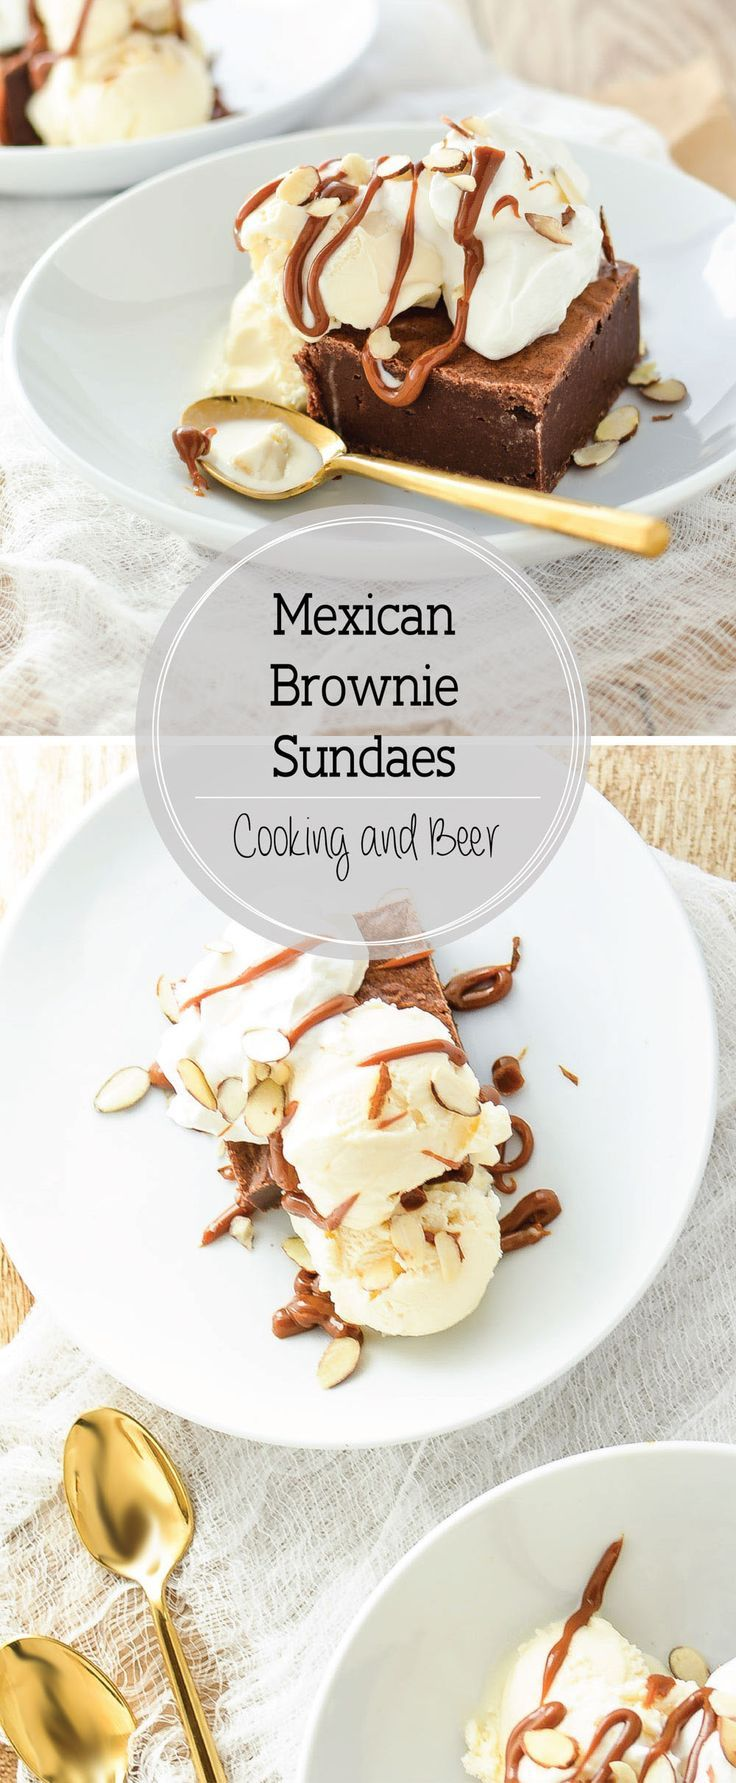 Mexican Chocolate Brownie Sundaes: a sweet chocolatey brownie treat topped with vanilla ice cream and dulce de leche!